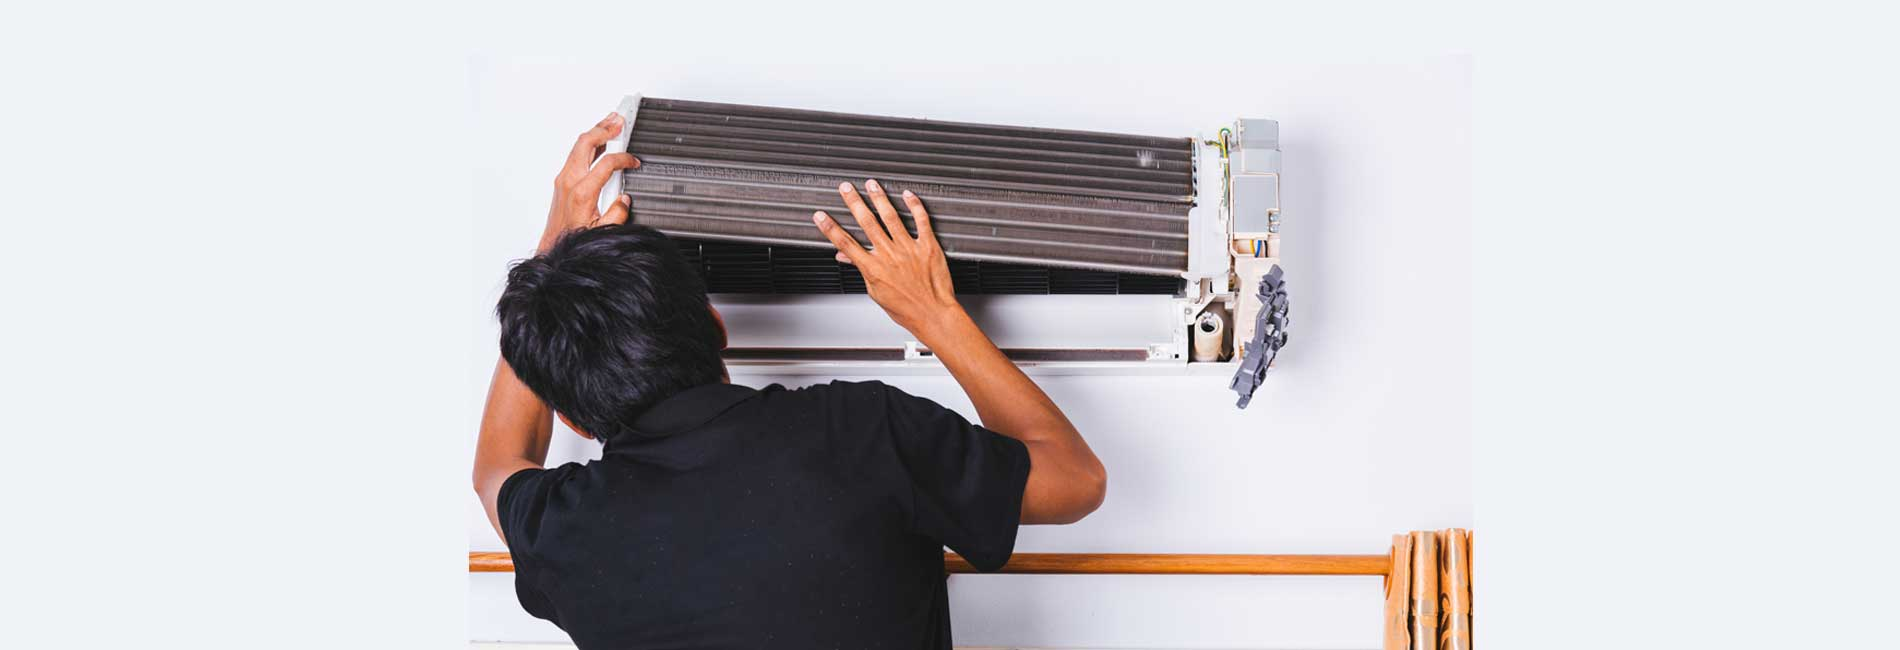 AC Repair in Athipattu